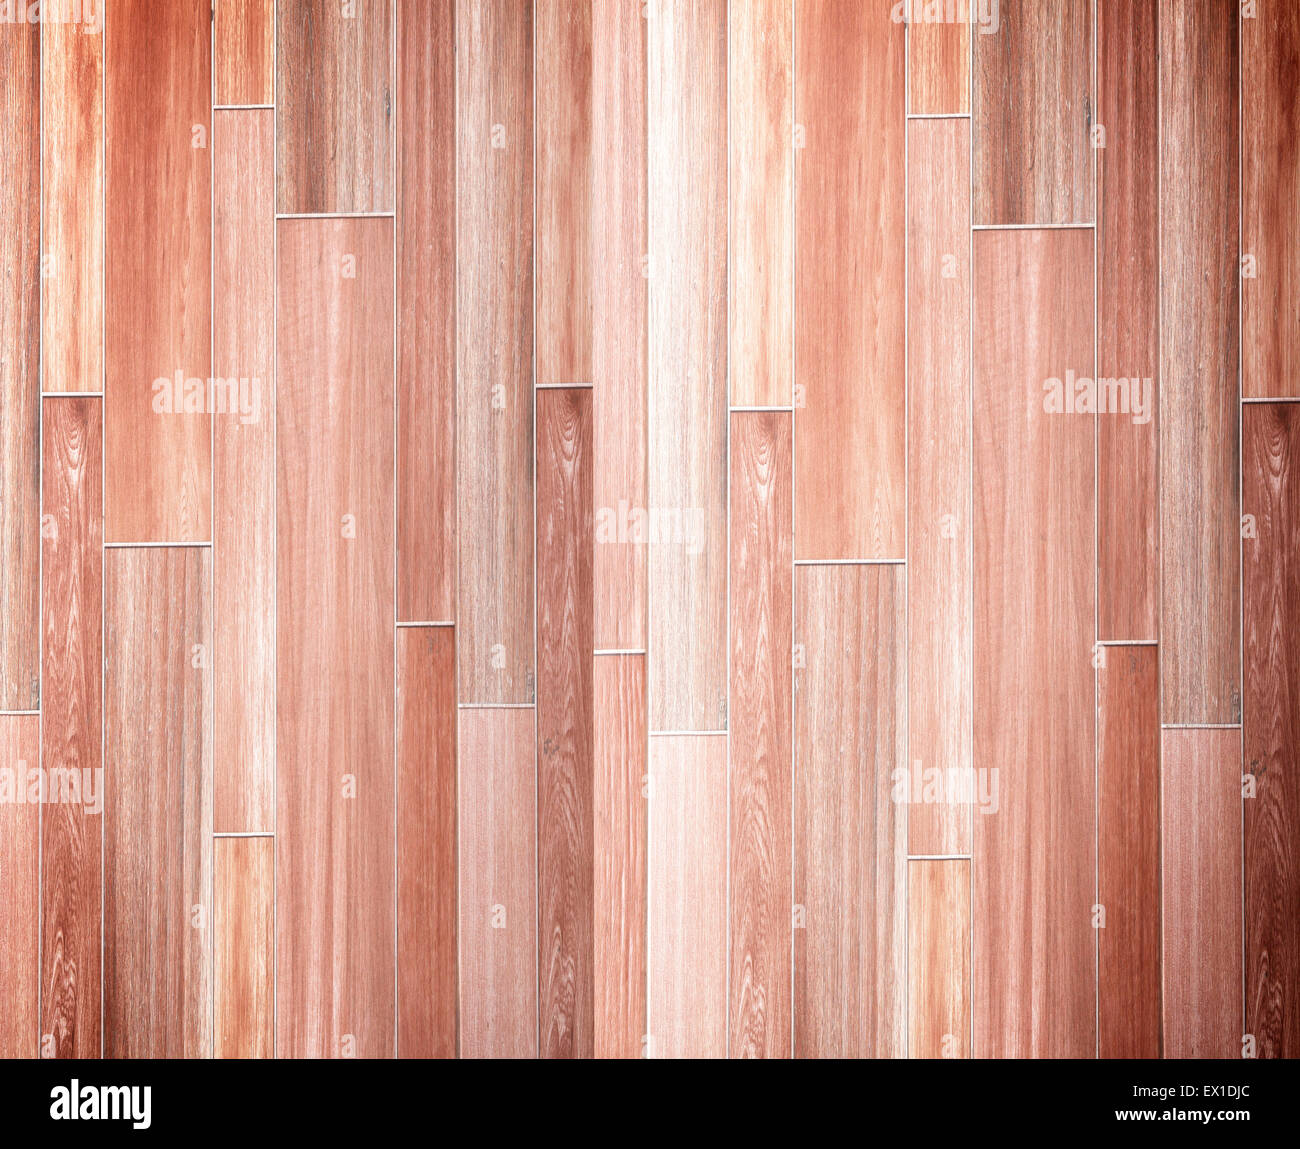 Laminated Wood plank brown pattern texture background. - Stock Image